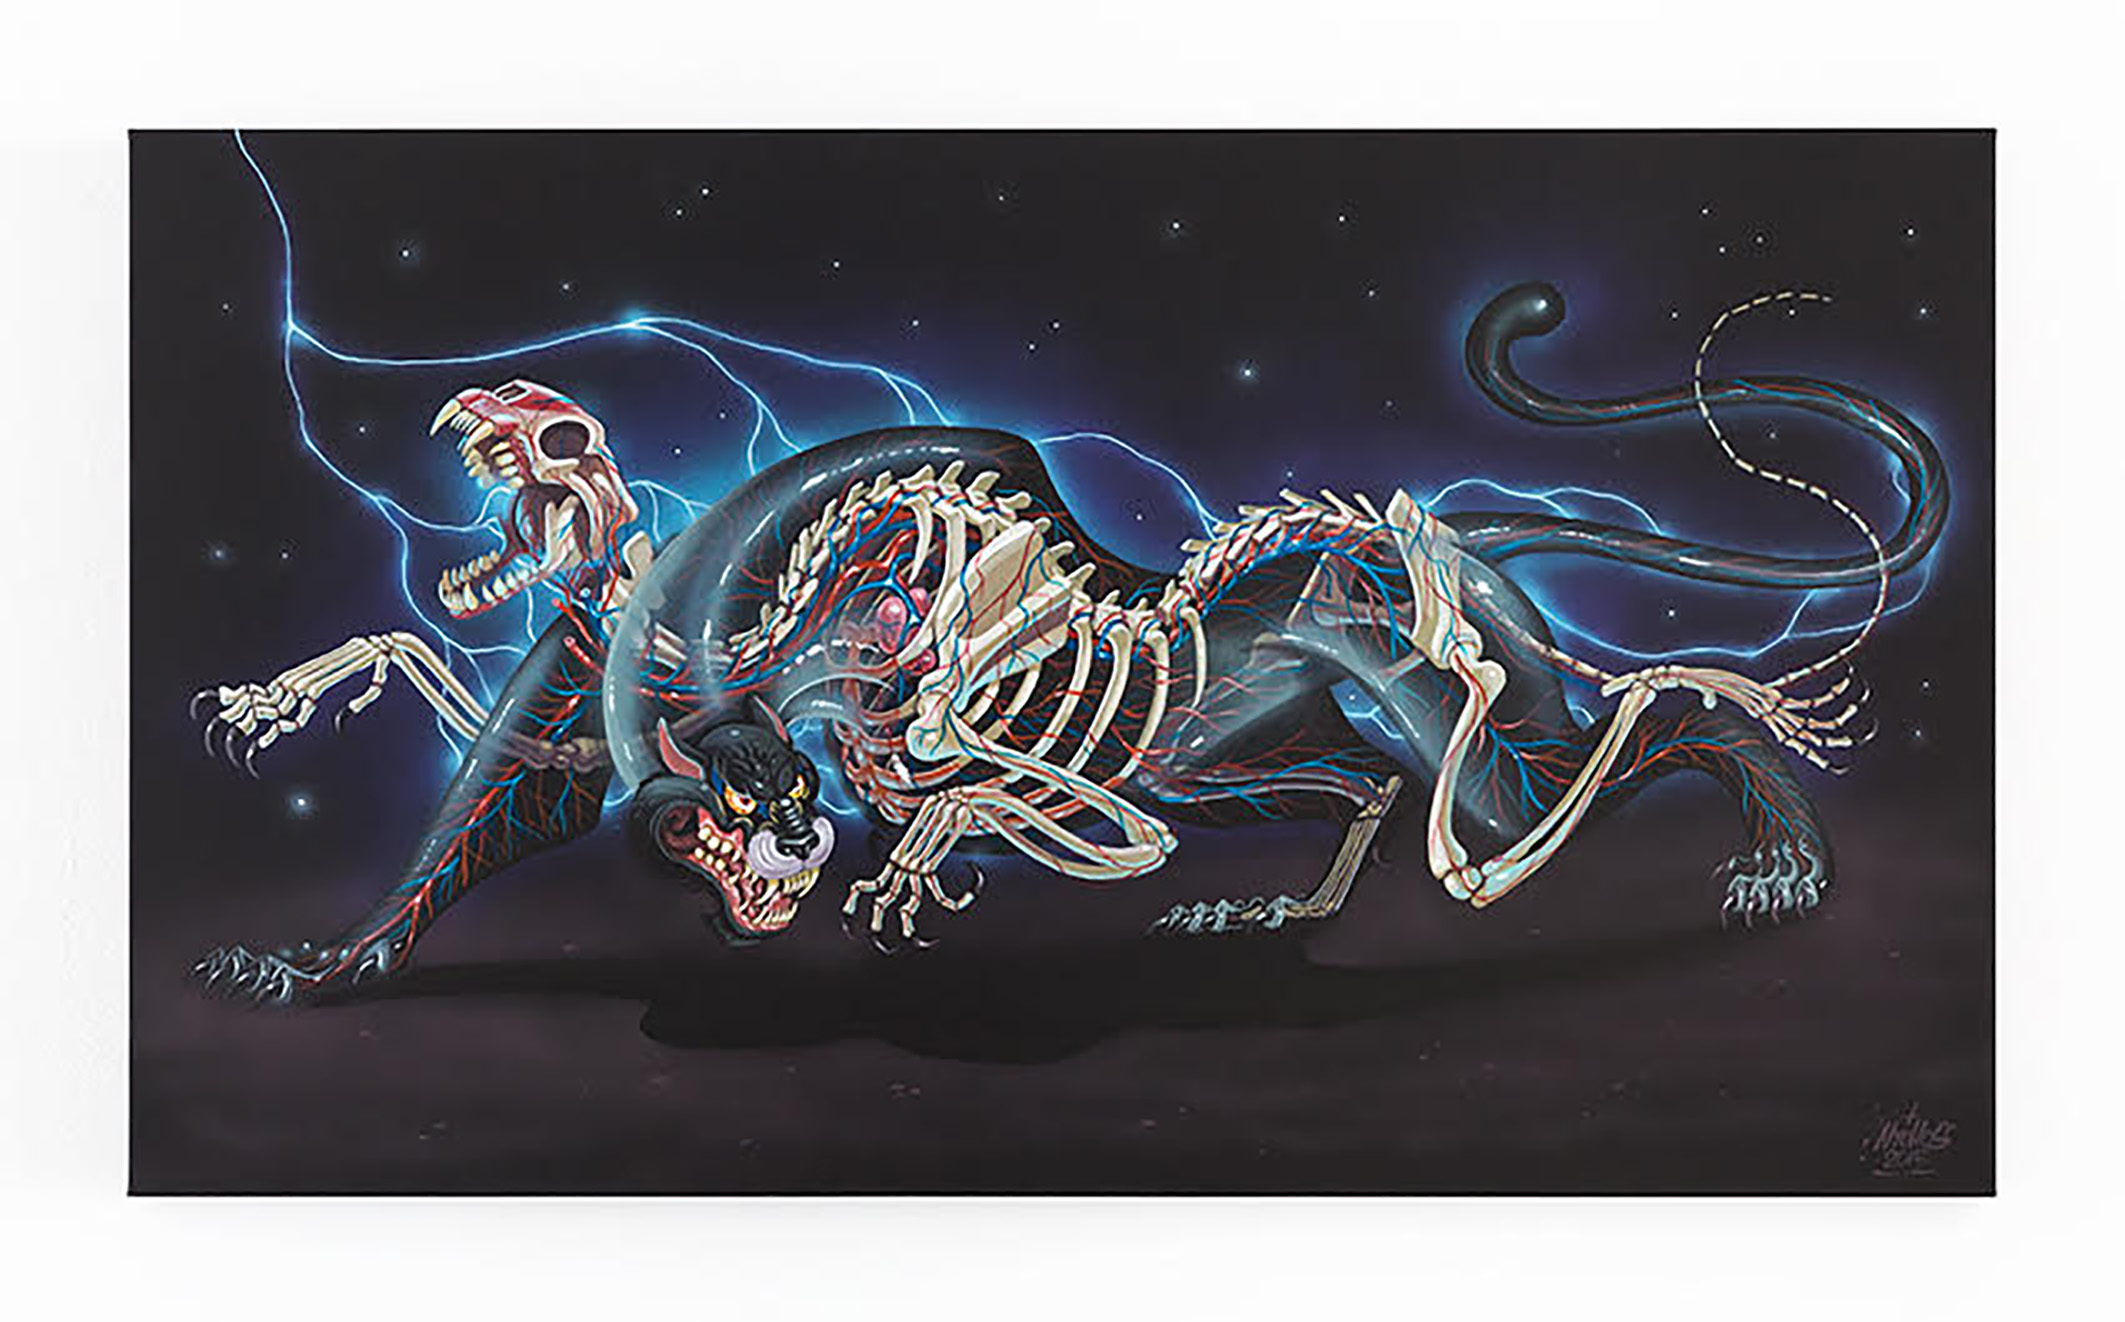 """Nychos will be live painting every day on large canvases similar to his """"Dissection of Black Tiger"""" piece. Limited edition prints of the painting he creates at Rolling Loud will be released after the festival through Monsieur Marcel."""